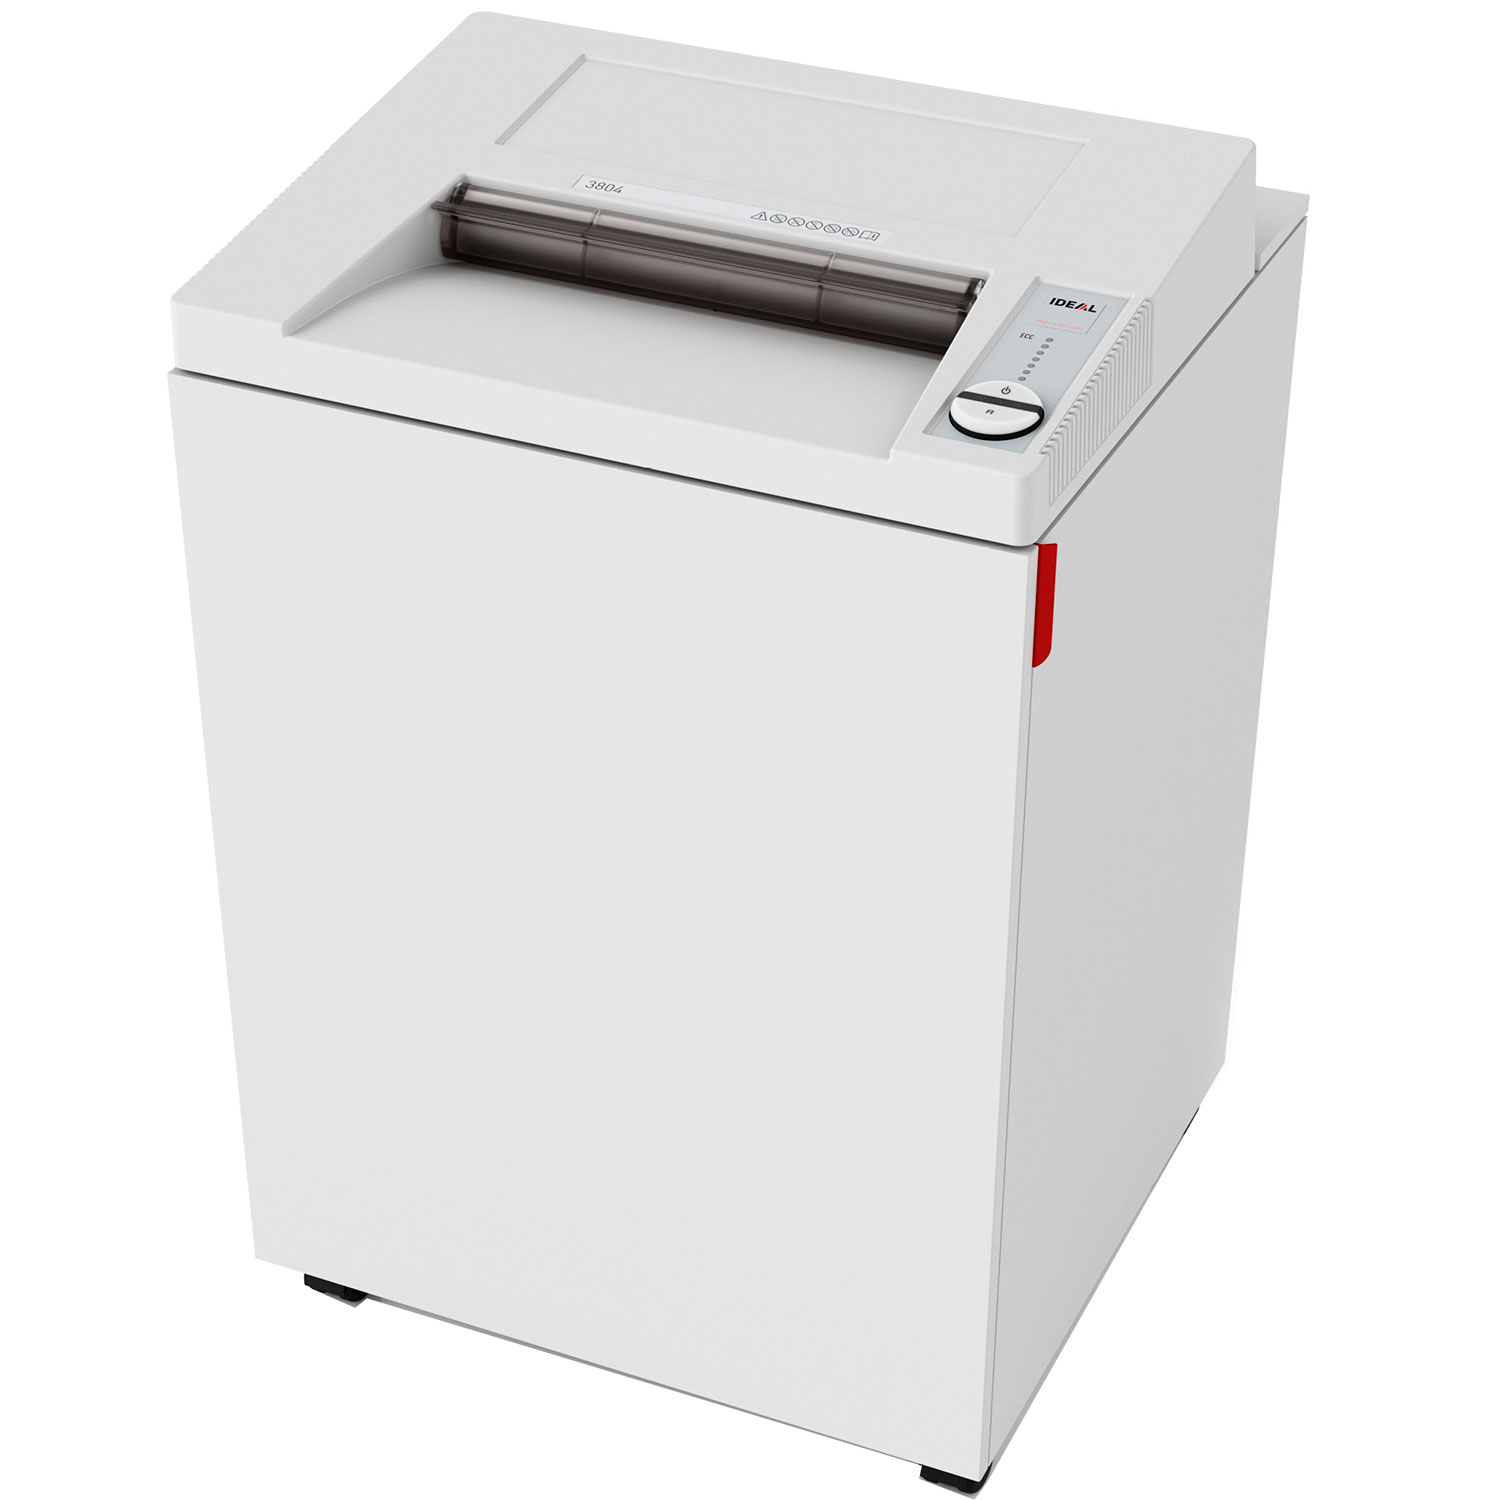 IDEAL 3804 Strip-Cut 6mm Paper Shredder